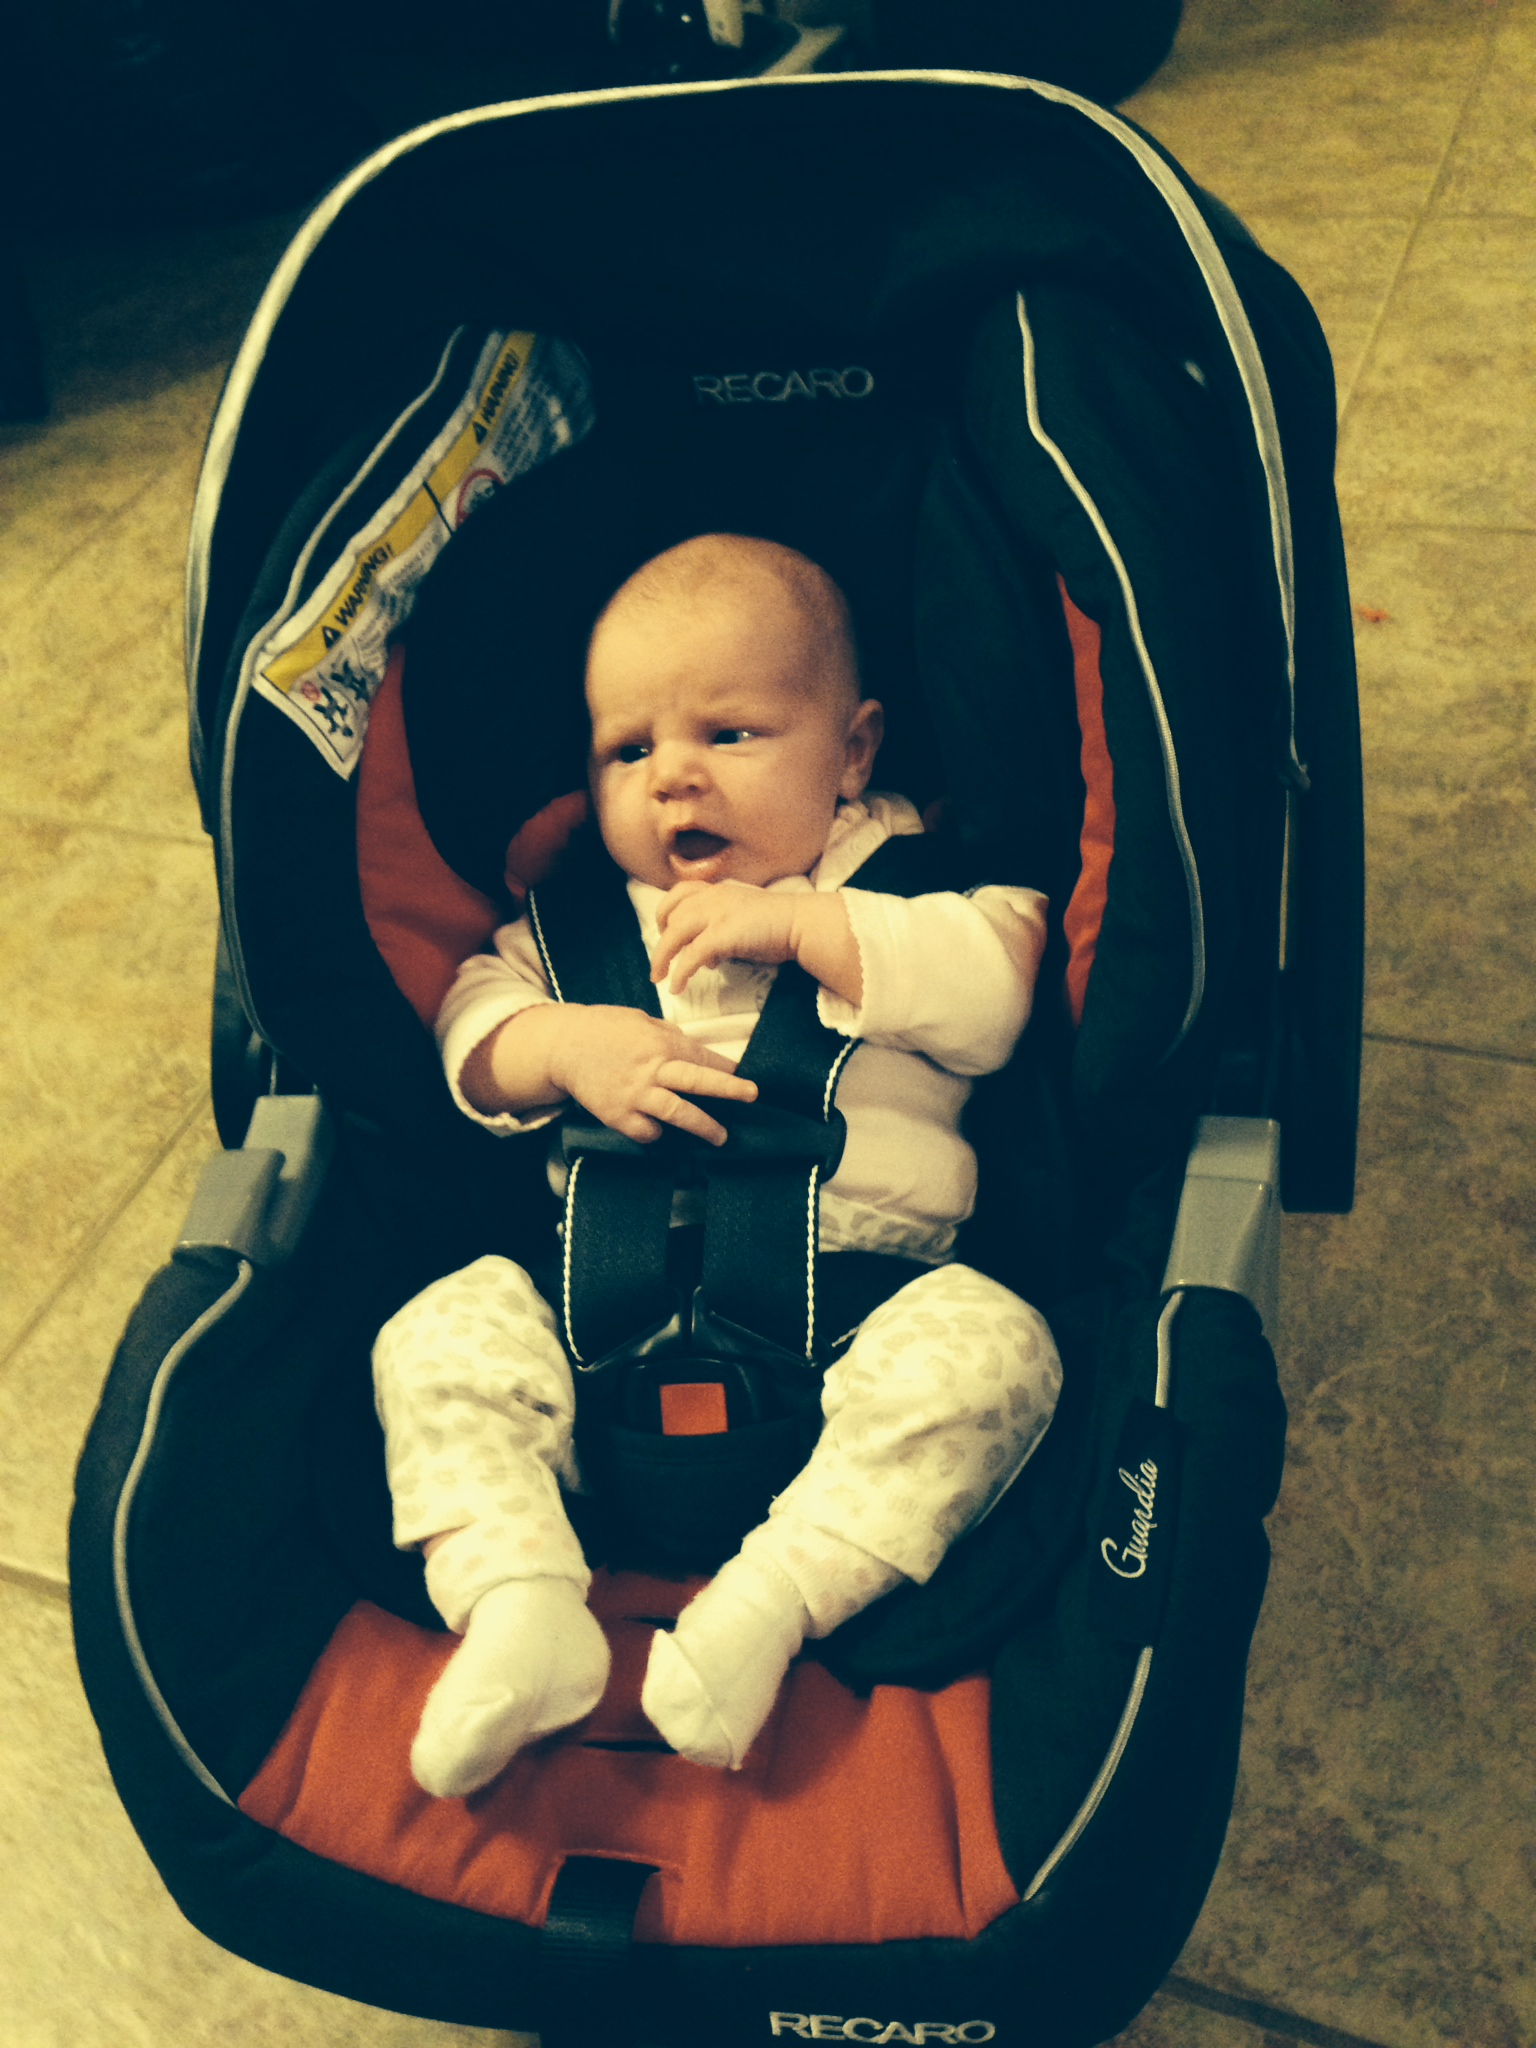 Recaro Recently Had Given Me The Chance To Review Their Travel System Includes Car Seat Base And Stroller